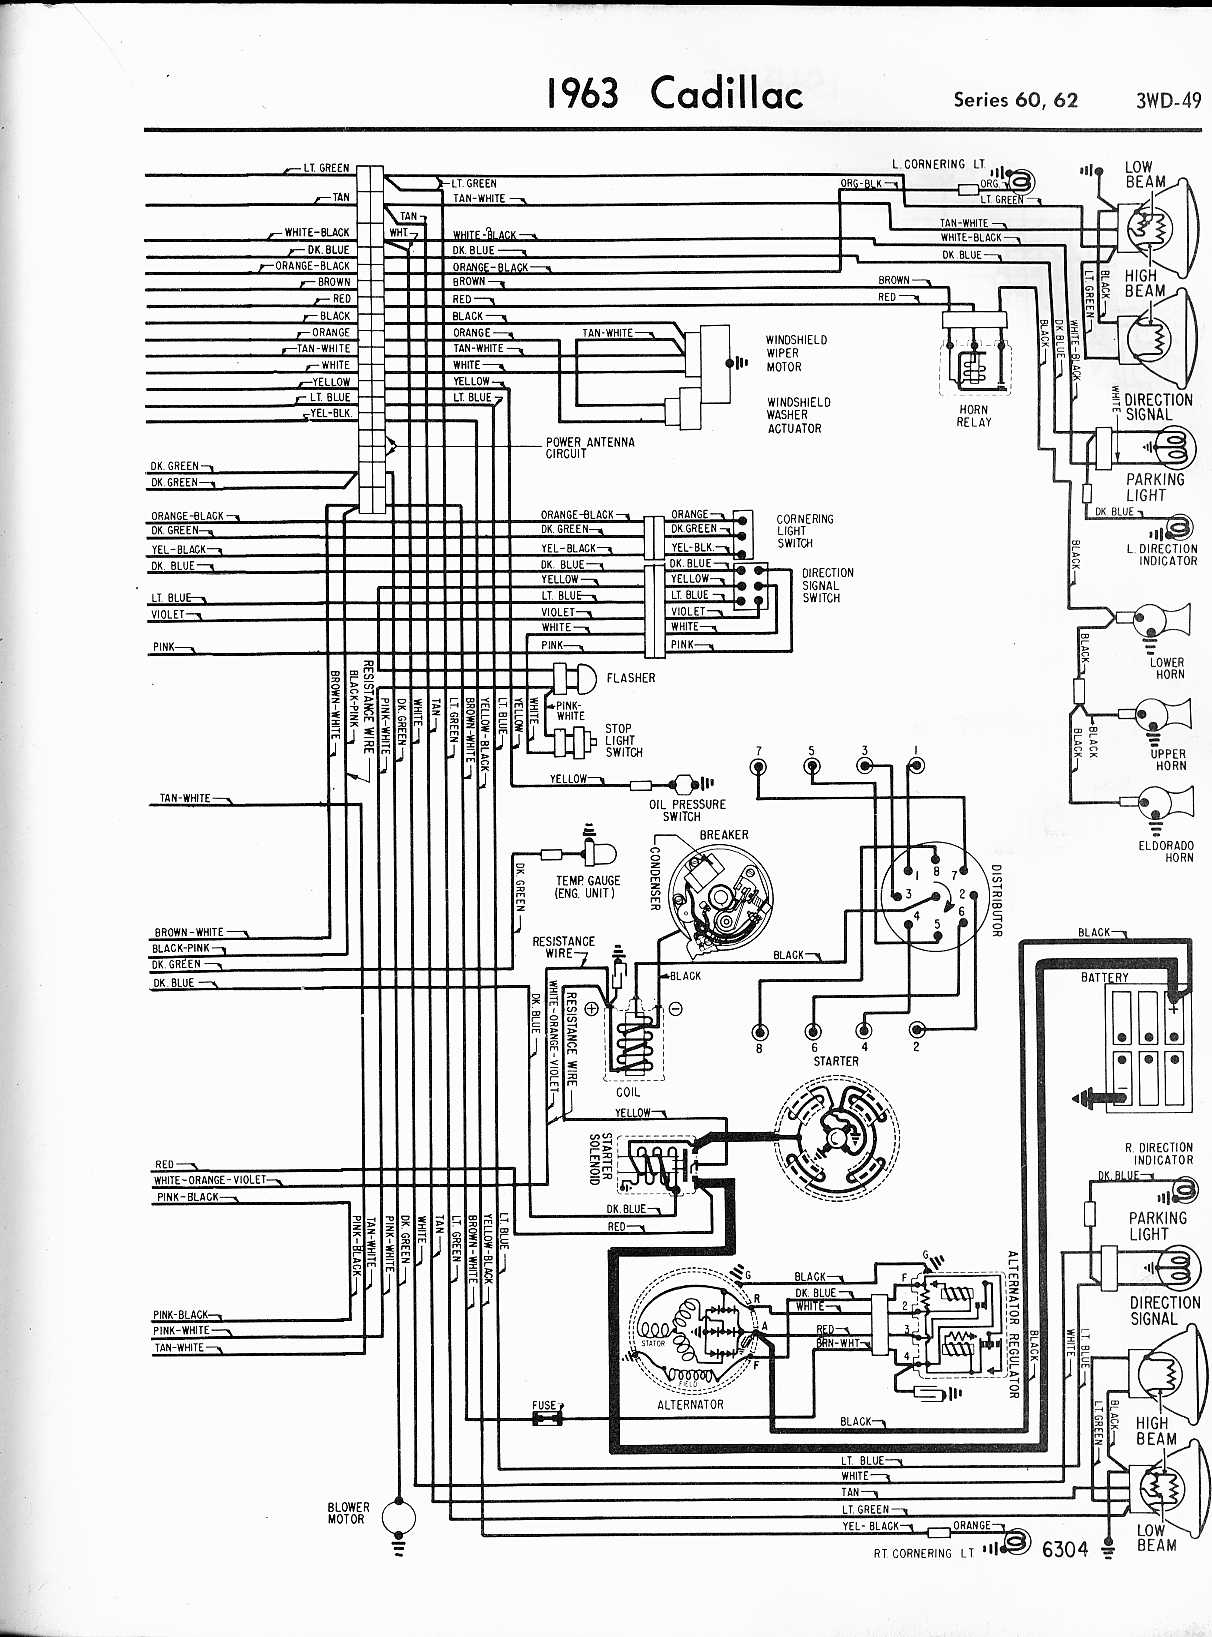 1960 lincoln continental automobile wiring diagram in part 1 of images. Black Bedroom Furniture Sets. Home Design Ideas